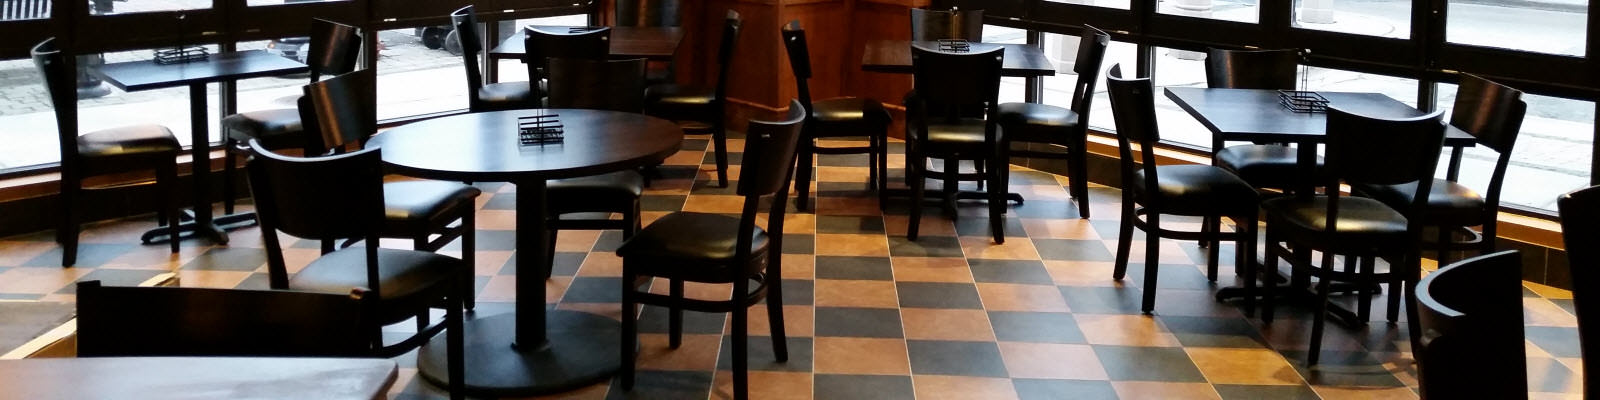 Restaurant interior and wood furniture